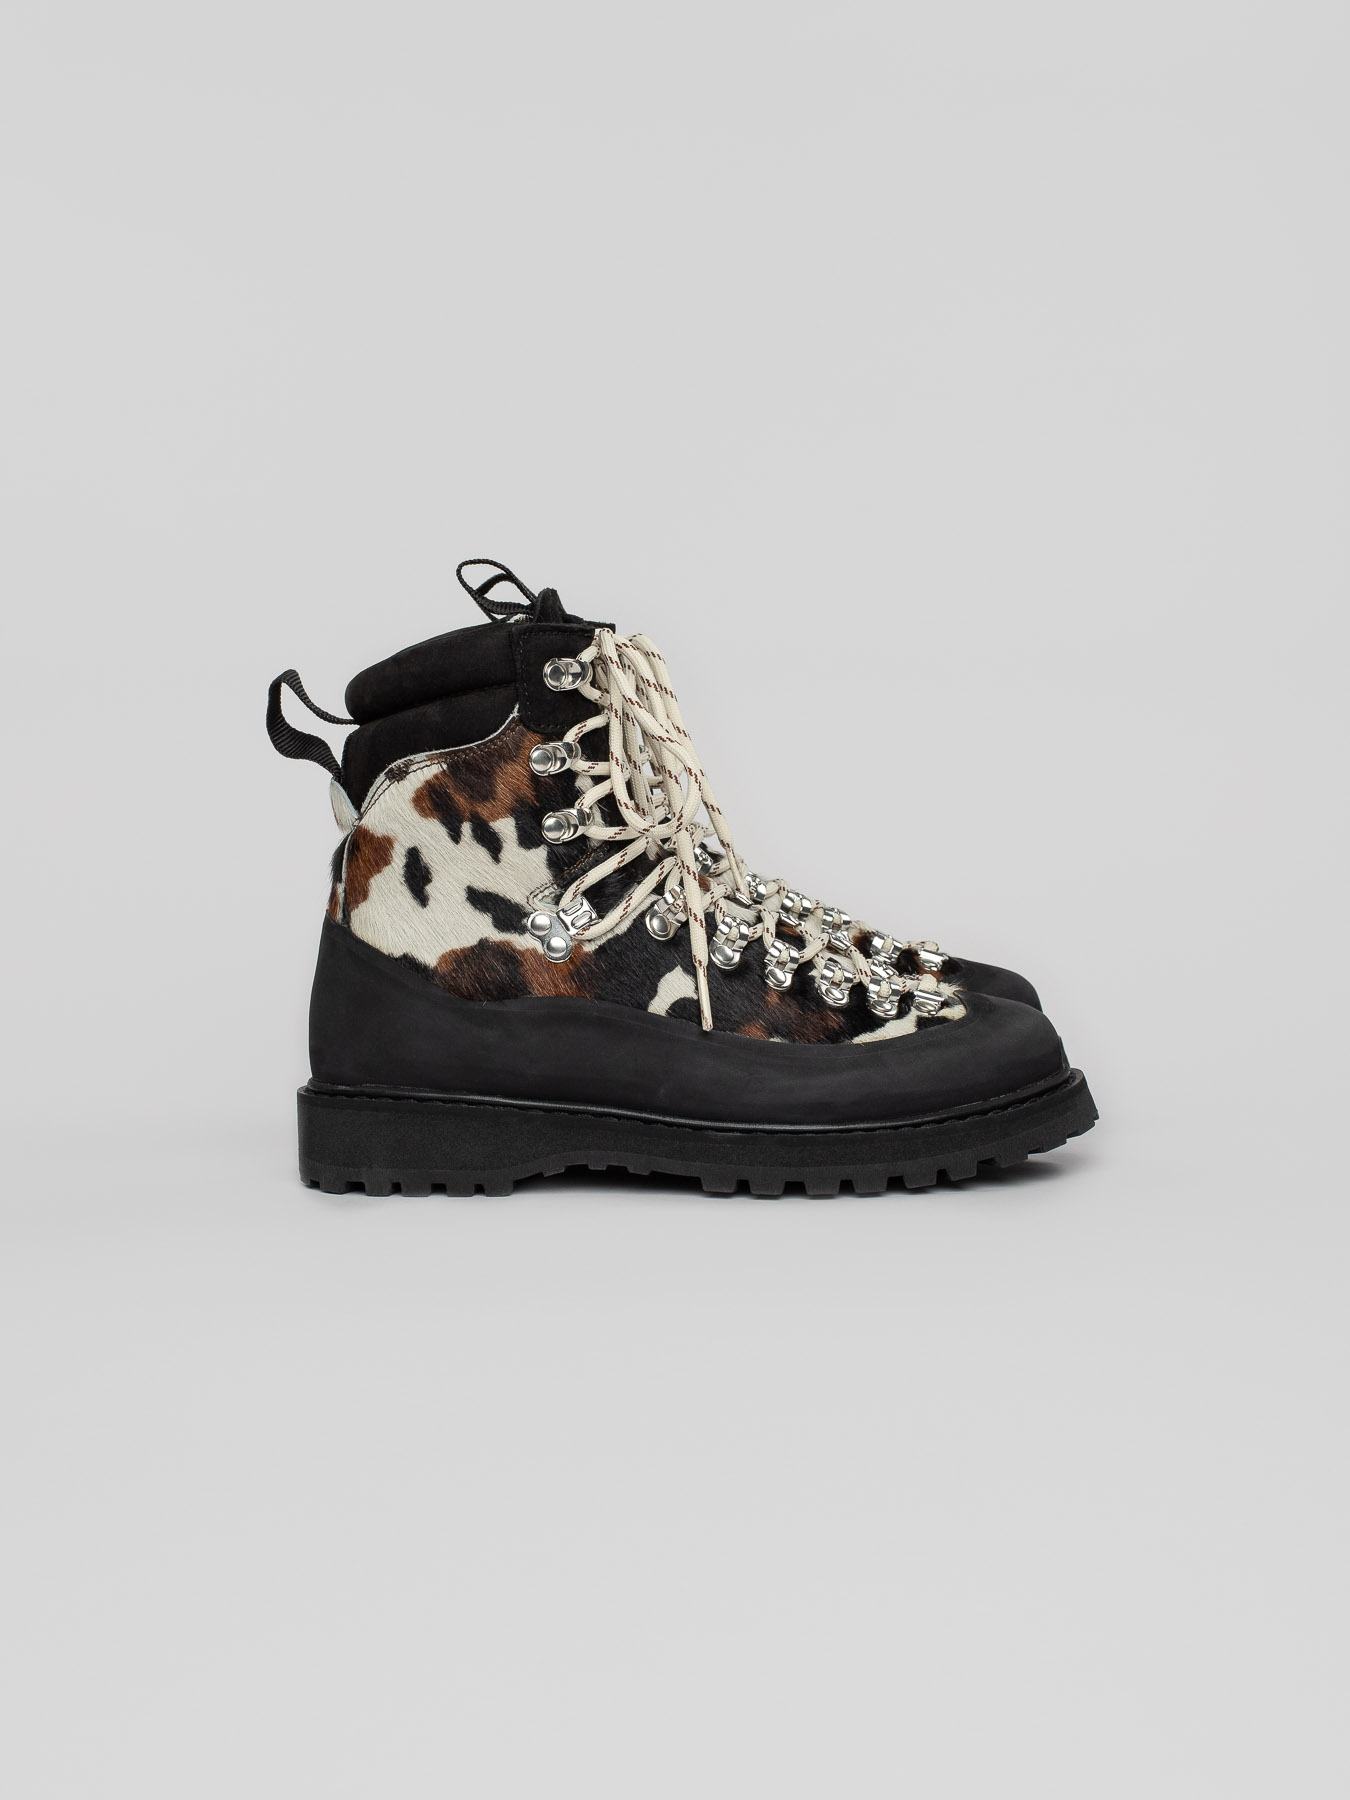 Diemme Everest Boots for cold winter climates